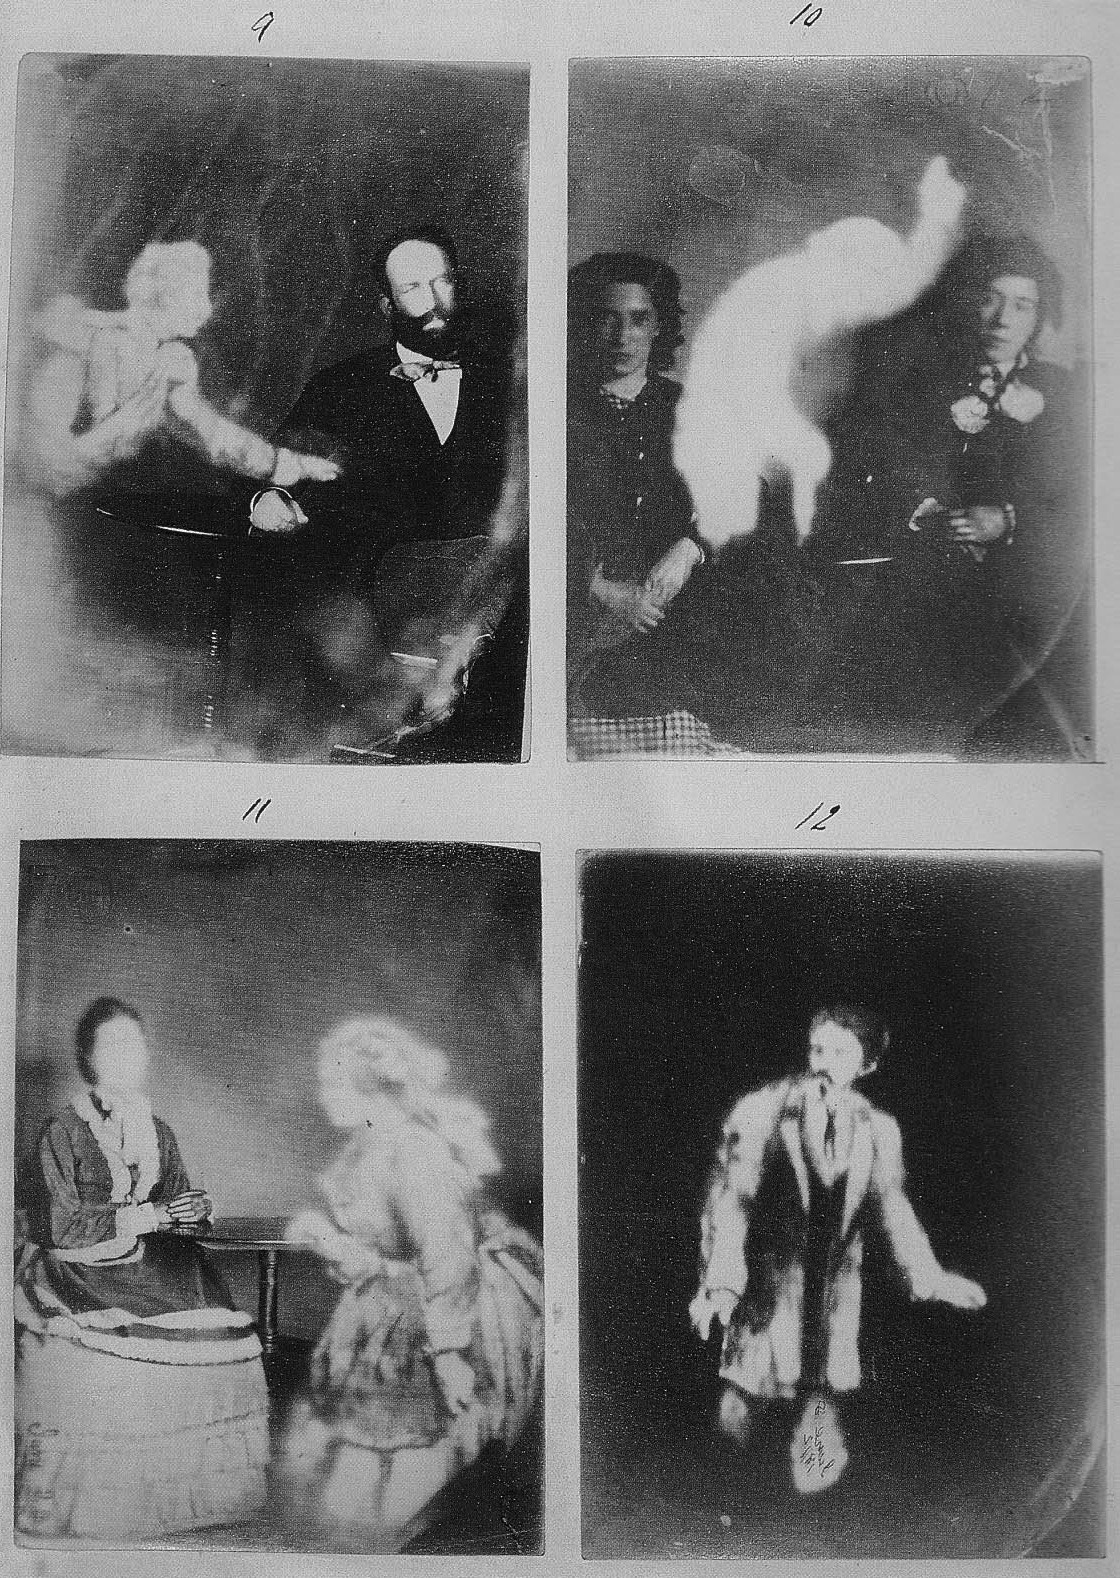 Four spirit photographs, 1800s.